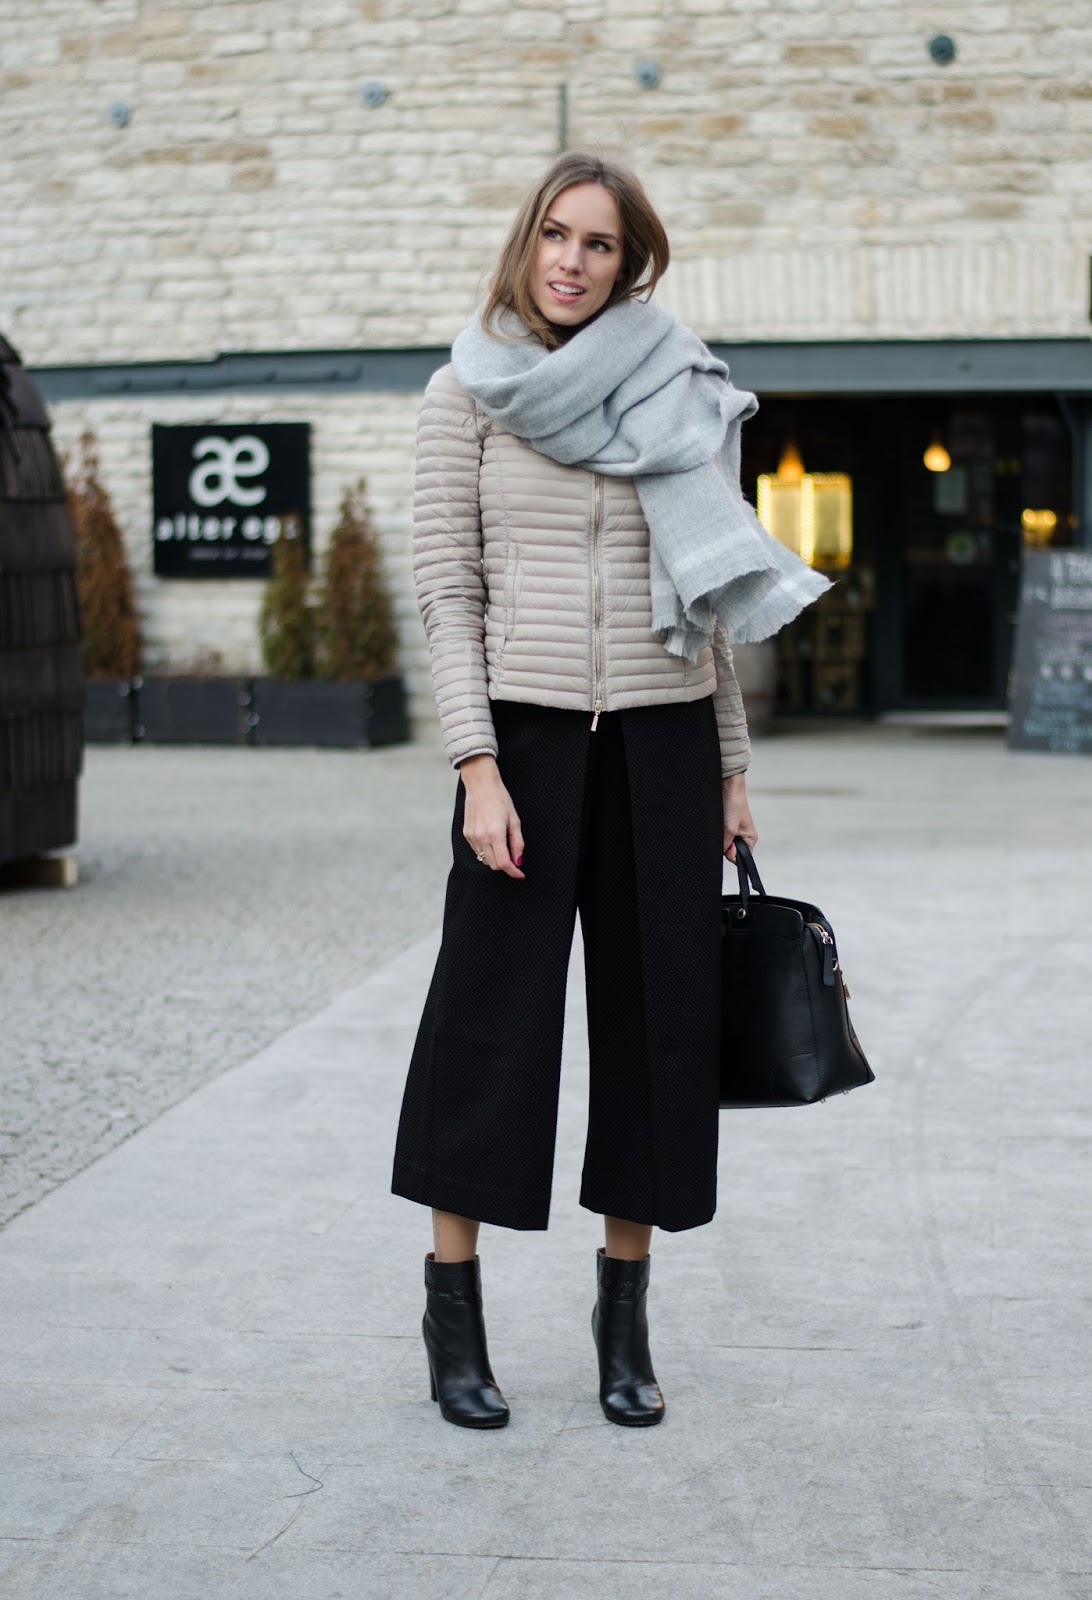 kristjaana mere black textured flared culottes winter outfit